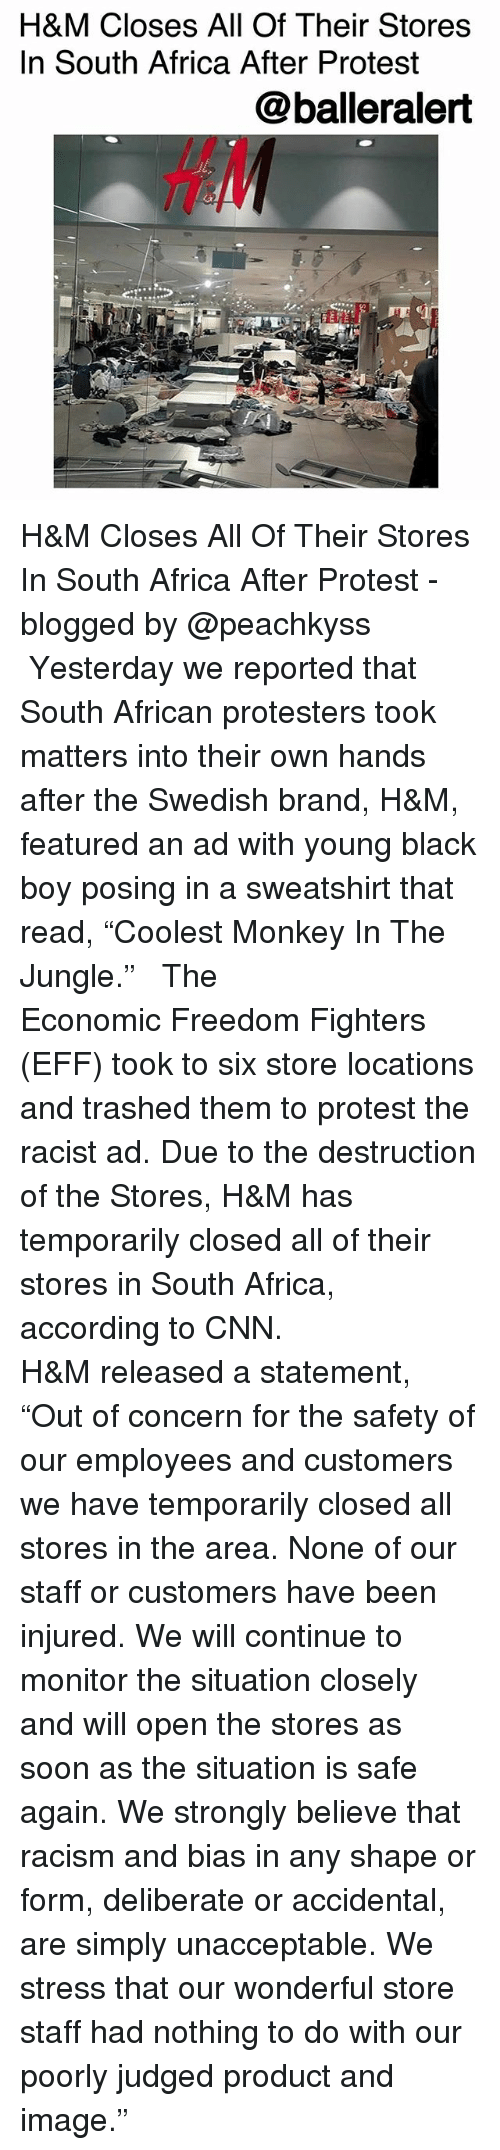 "freedom fighters: H&M Closes All Of Their Stores  In South Africa After Protest  @balleralert  HA H&M Closes All Of Their Stores In South Africa After Protest -blogged by @peachkyss ⠀⠀⠀⠀⠀⠀⠀ ⠀⠀⠀⠀⠀⠀⠀ Yesterday we reported that South African protesters took matters into their own hands after the Swedish brand, H&M, featured an ad with young black boy posing in a sweatshirt that read, ""Coolest Monkey In The Jungle."" ⠀⠀⠀⠀⠀⠀⠀ ⠀⠀⠀⠀⠀⠀⠀ The Economic Freedom Fighters (EFF) took to six store locations and trashed them to protest the racist ad. Due to the destruction of the Stores, H&M has temporarily closed all of their stores in South Africa, according to CNN. ⠀⠀⠀⠀⠀⠀⠀ ⠀⠀⠀⠀⠀⠀⠀ H&M released a statement, ""Out of concern for the safety of our employees and customers we have temporarily closed all stores in the area. None of our staff or customers have been injured. We will continue to monitor the situation closely and will open the stores as soon as the situation is safe again. We strongly believe that racism and bias in any shape or form, deliberate or accidental, are simply unacceptable. We stress that our wonderful store staff had nothing to do with our poorly judged product and image."""